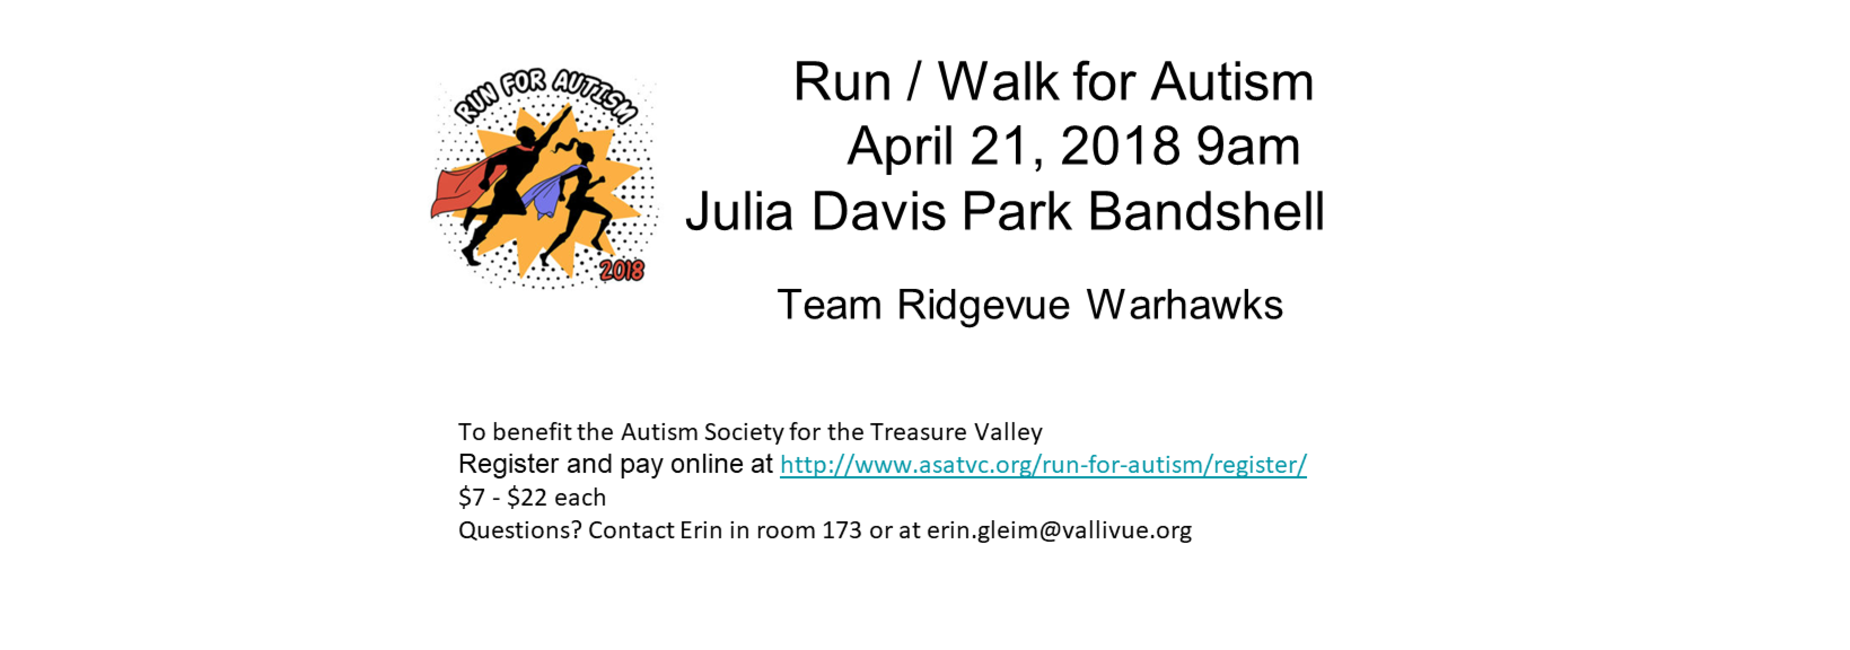 Run/Walk for Autism